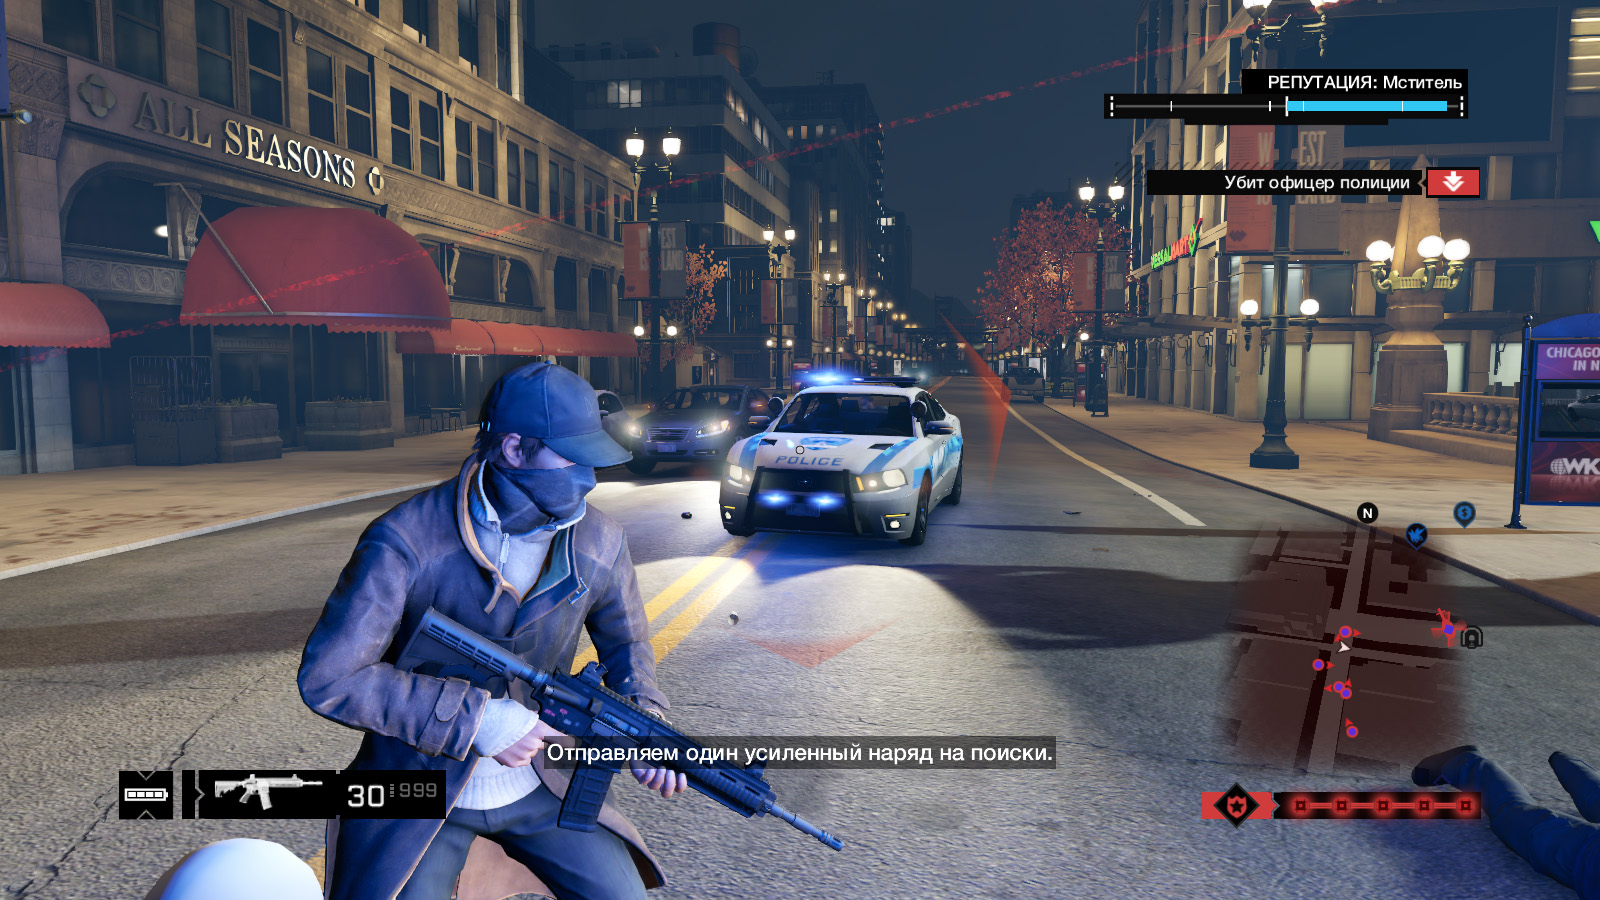 Скриншот *Watch Dogs - Complete Edition [PS4] 5.05 / 6.72 / 7.02 [EUR] (2014) [Русский] (v1.00)*